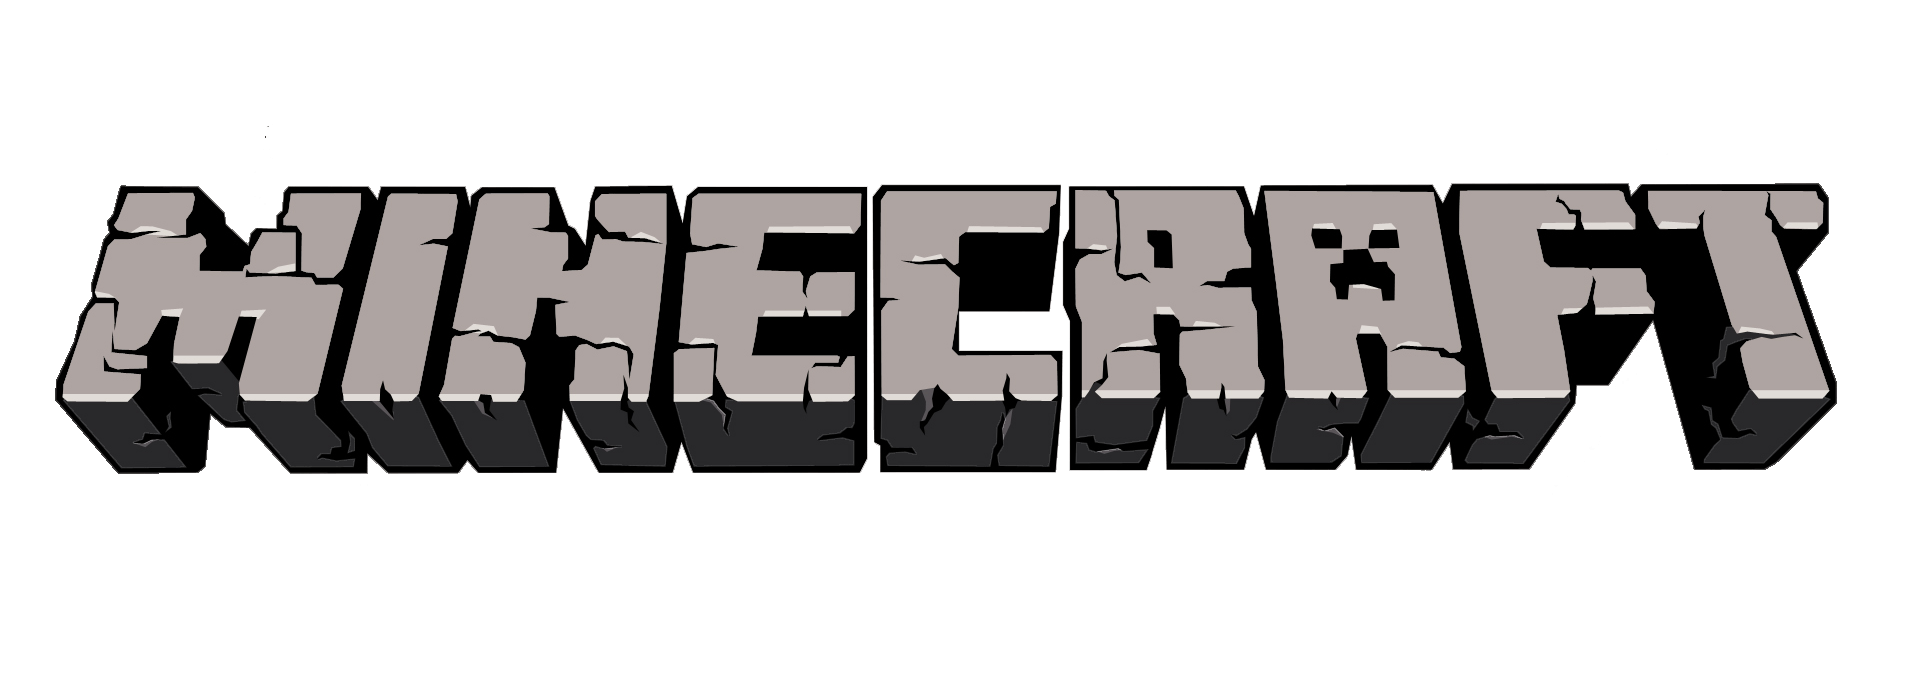 freeuse stock drawing minecraft logo #95182456